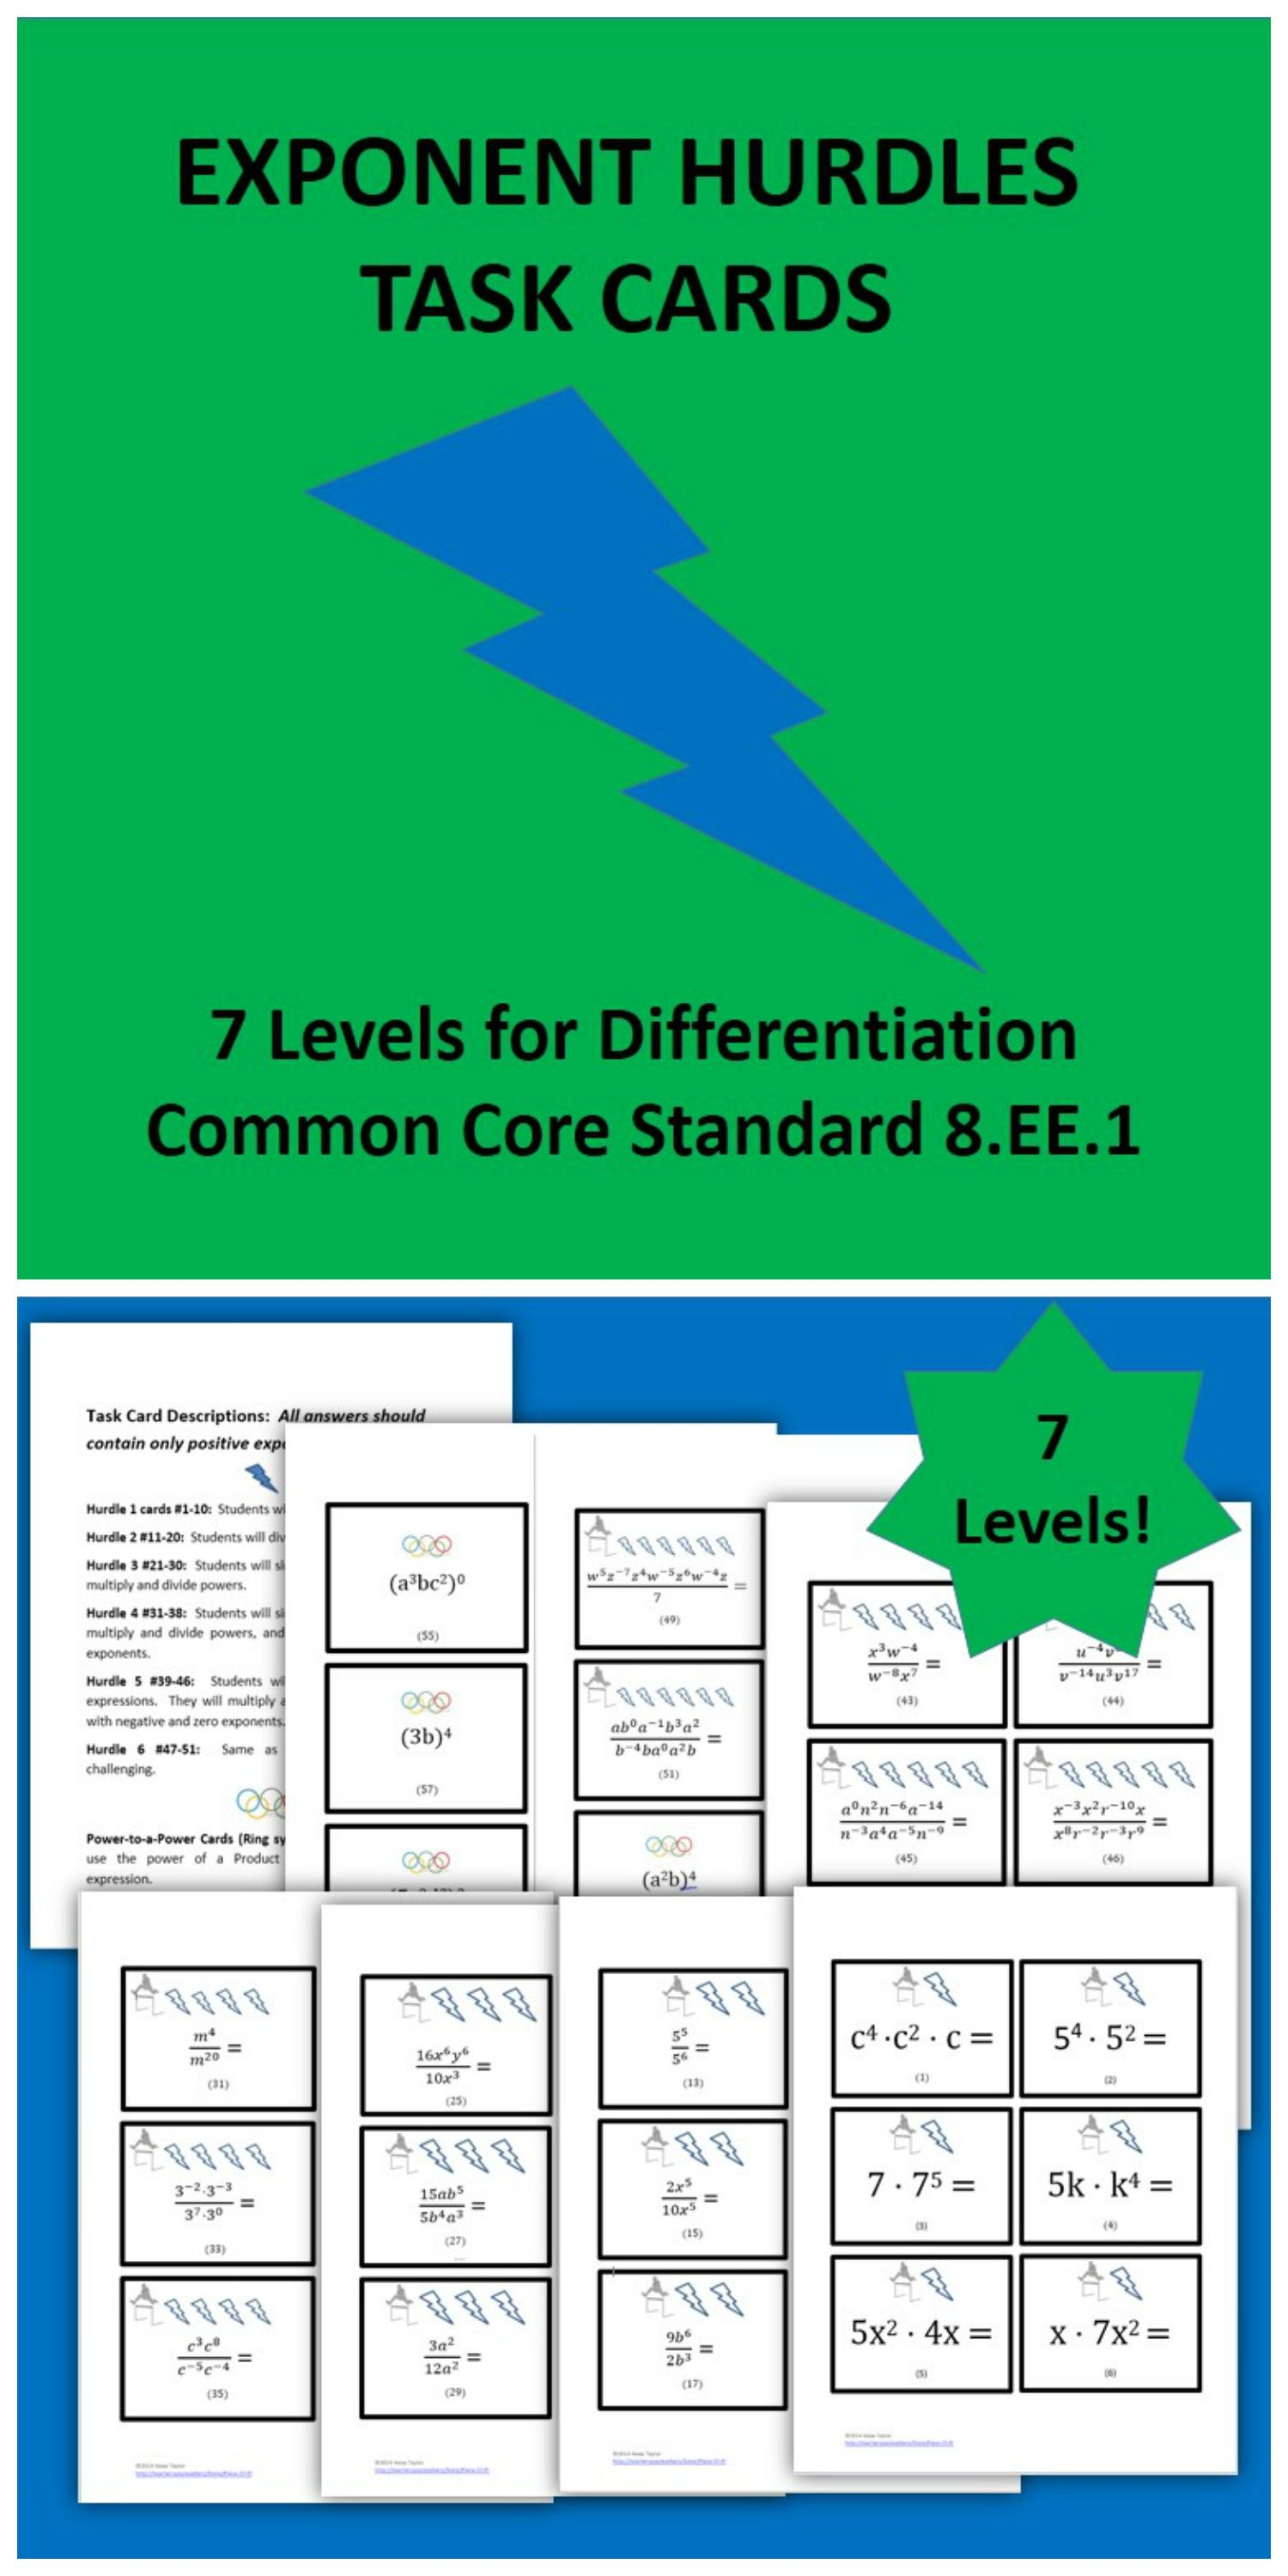 Exponent Rules Practice Hurdles 81 Differentiation Task Card